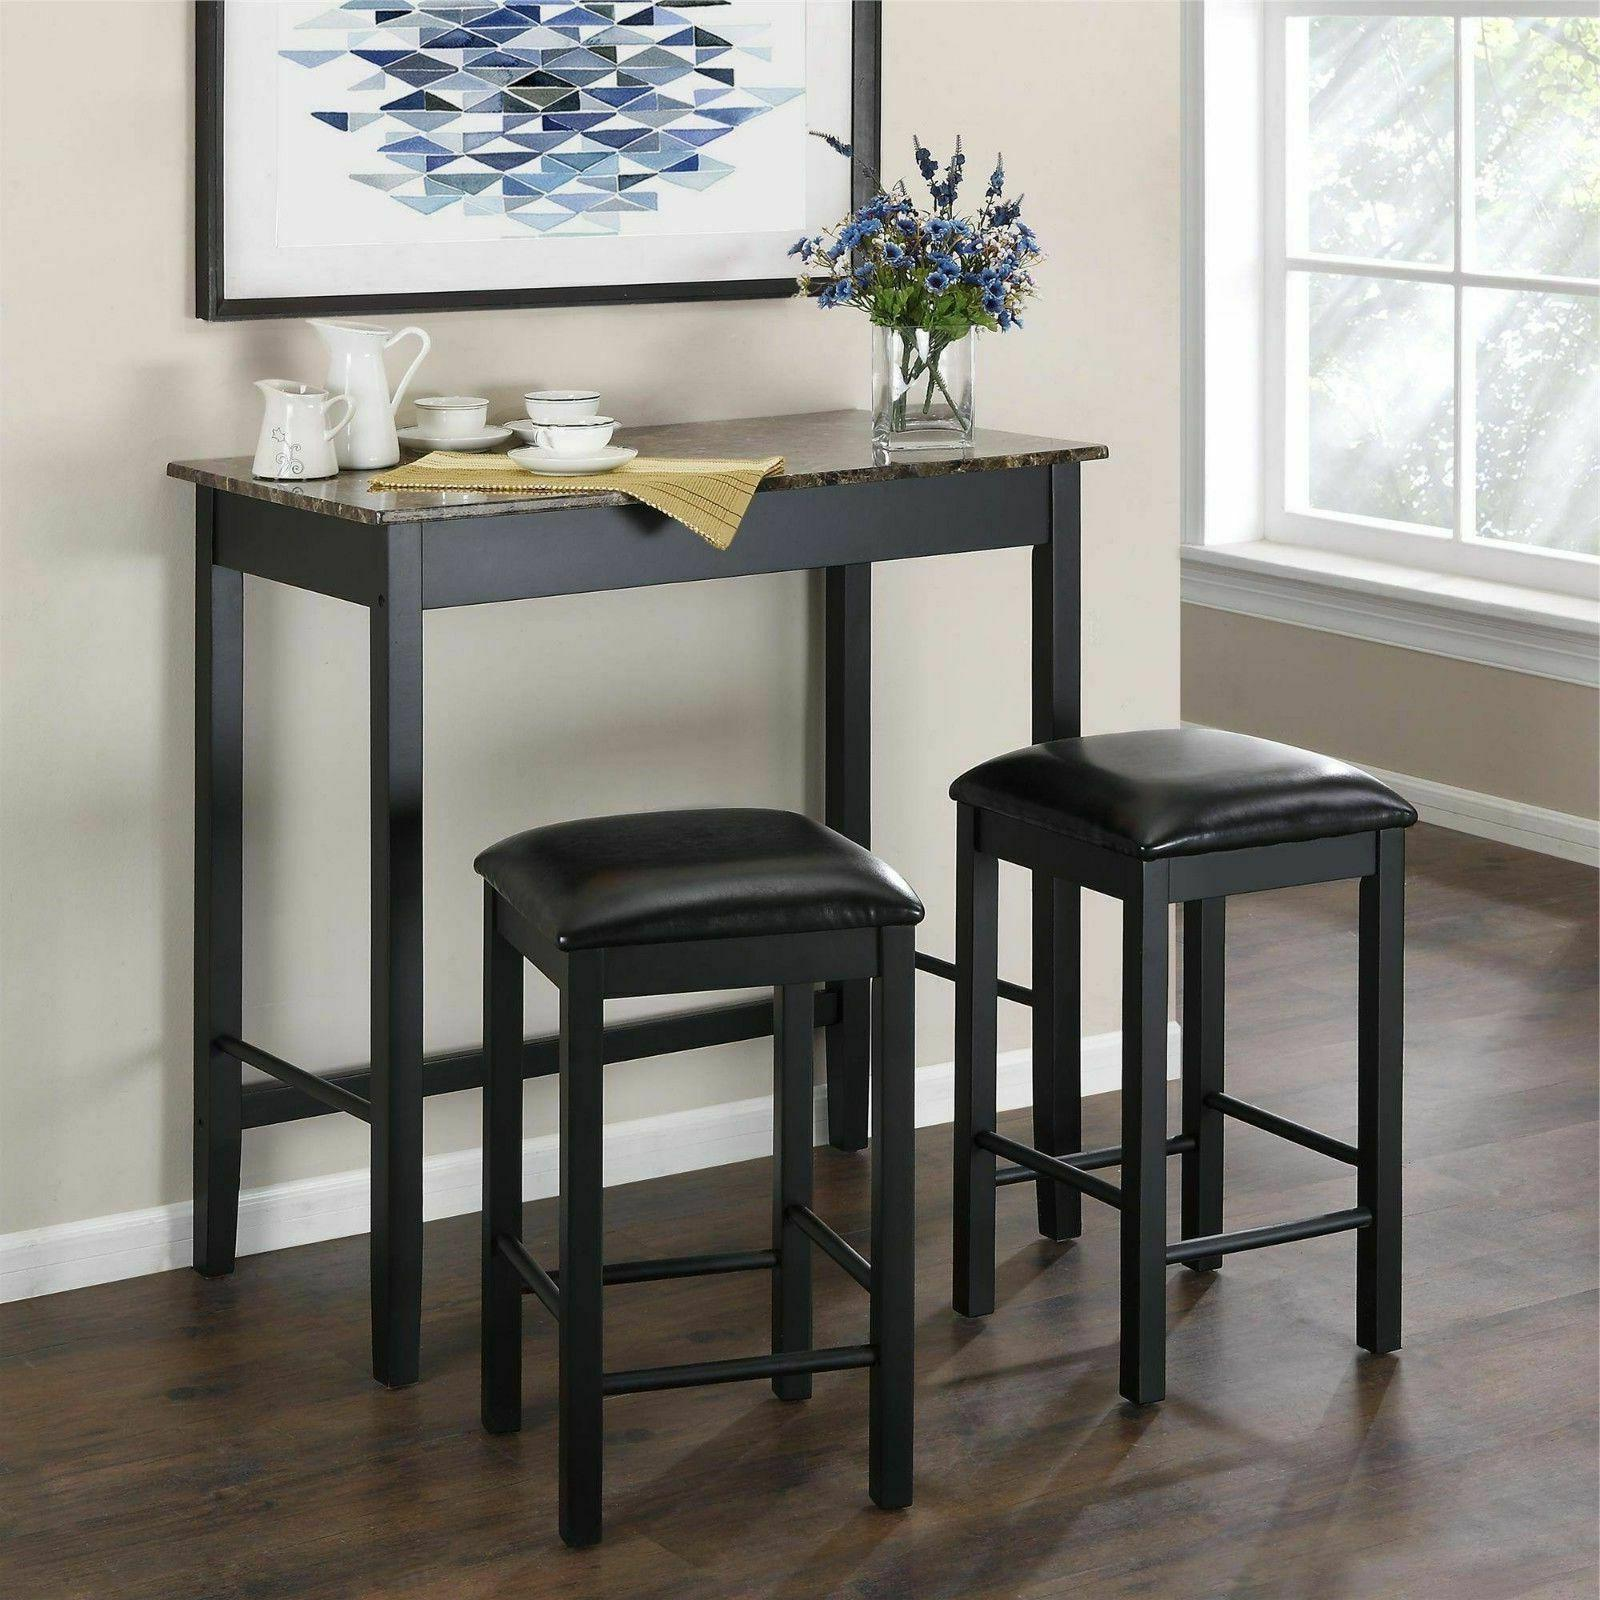 3 Piece Dining Pub Set Kitchen Counter Height Home Bar Leath